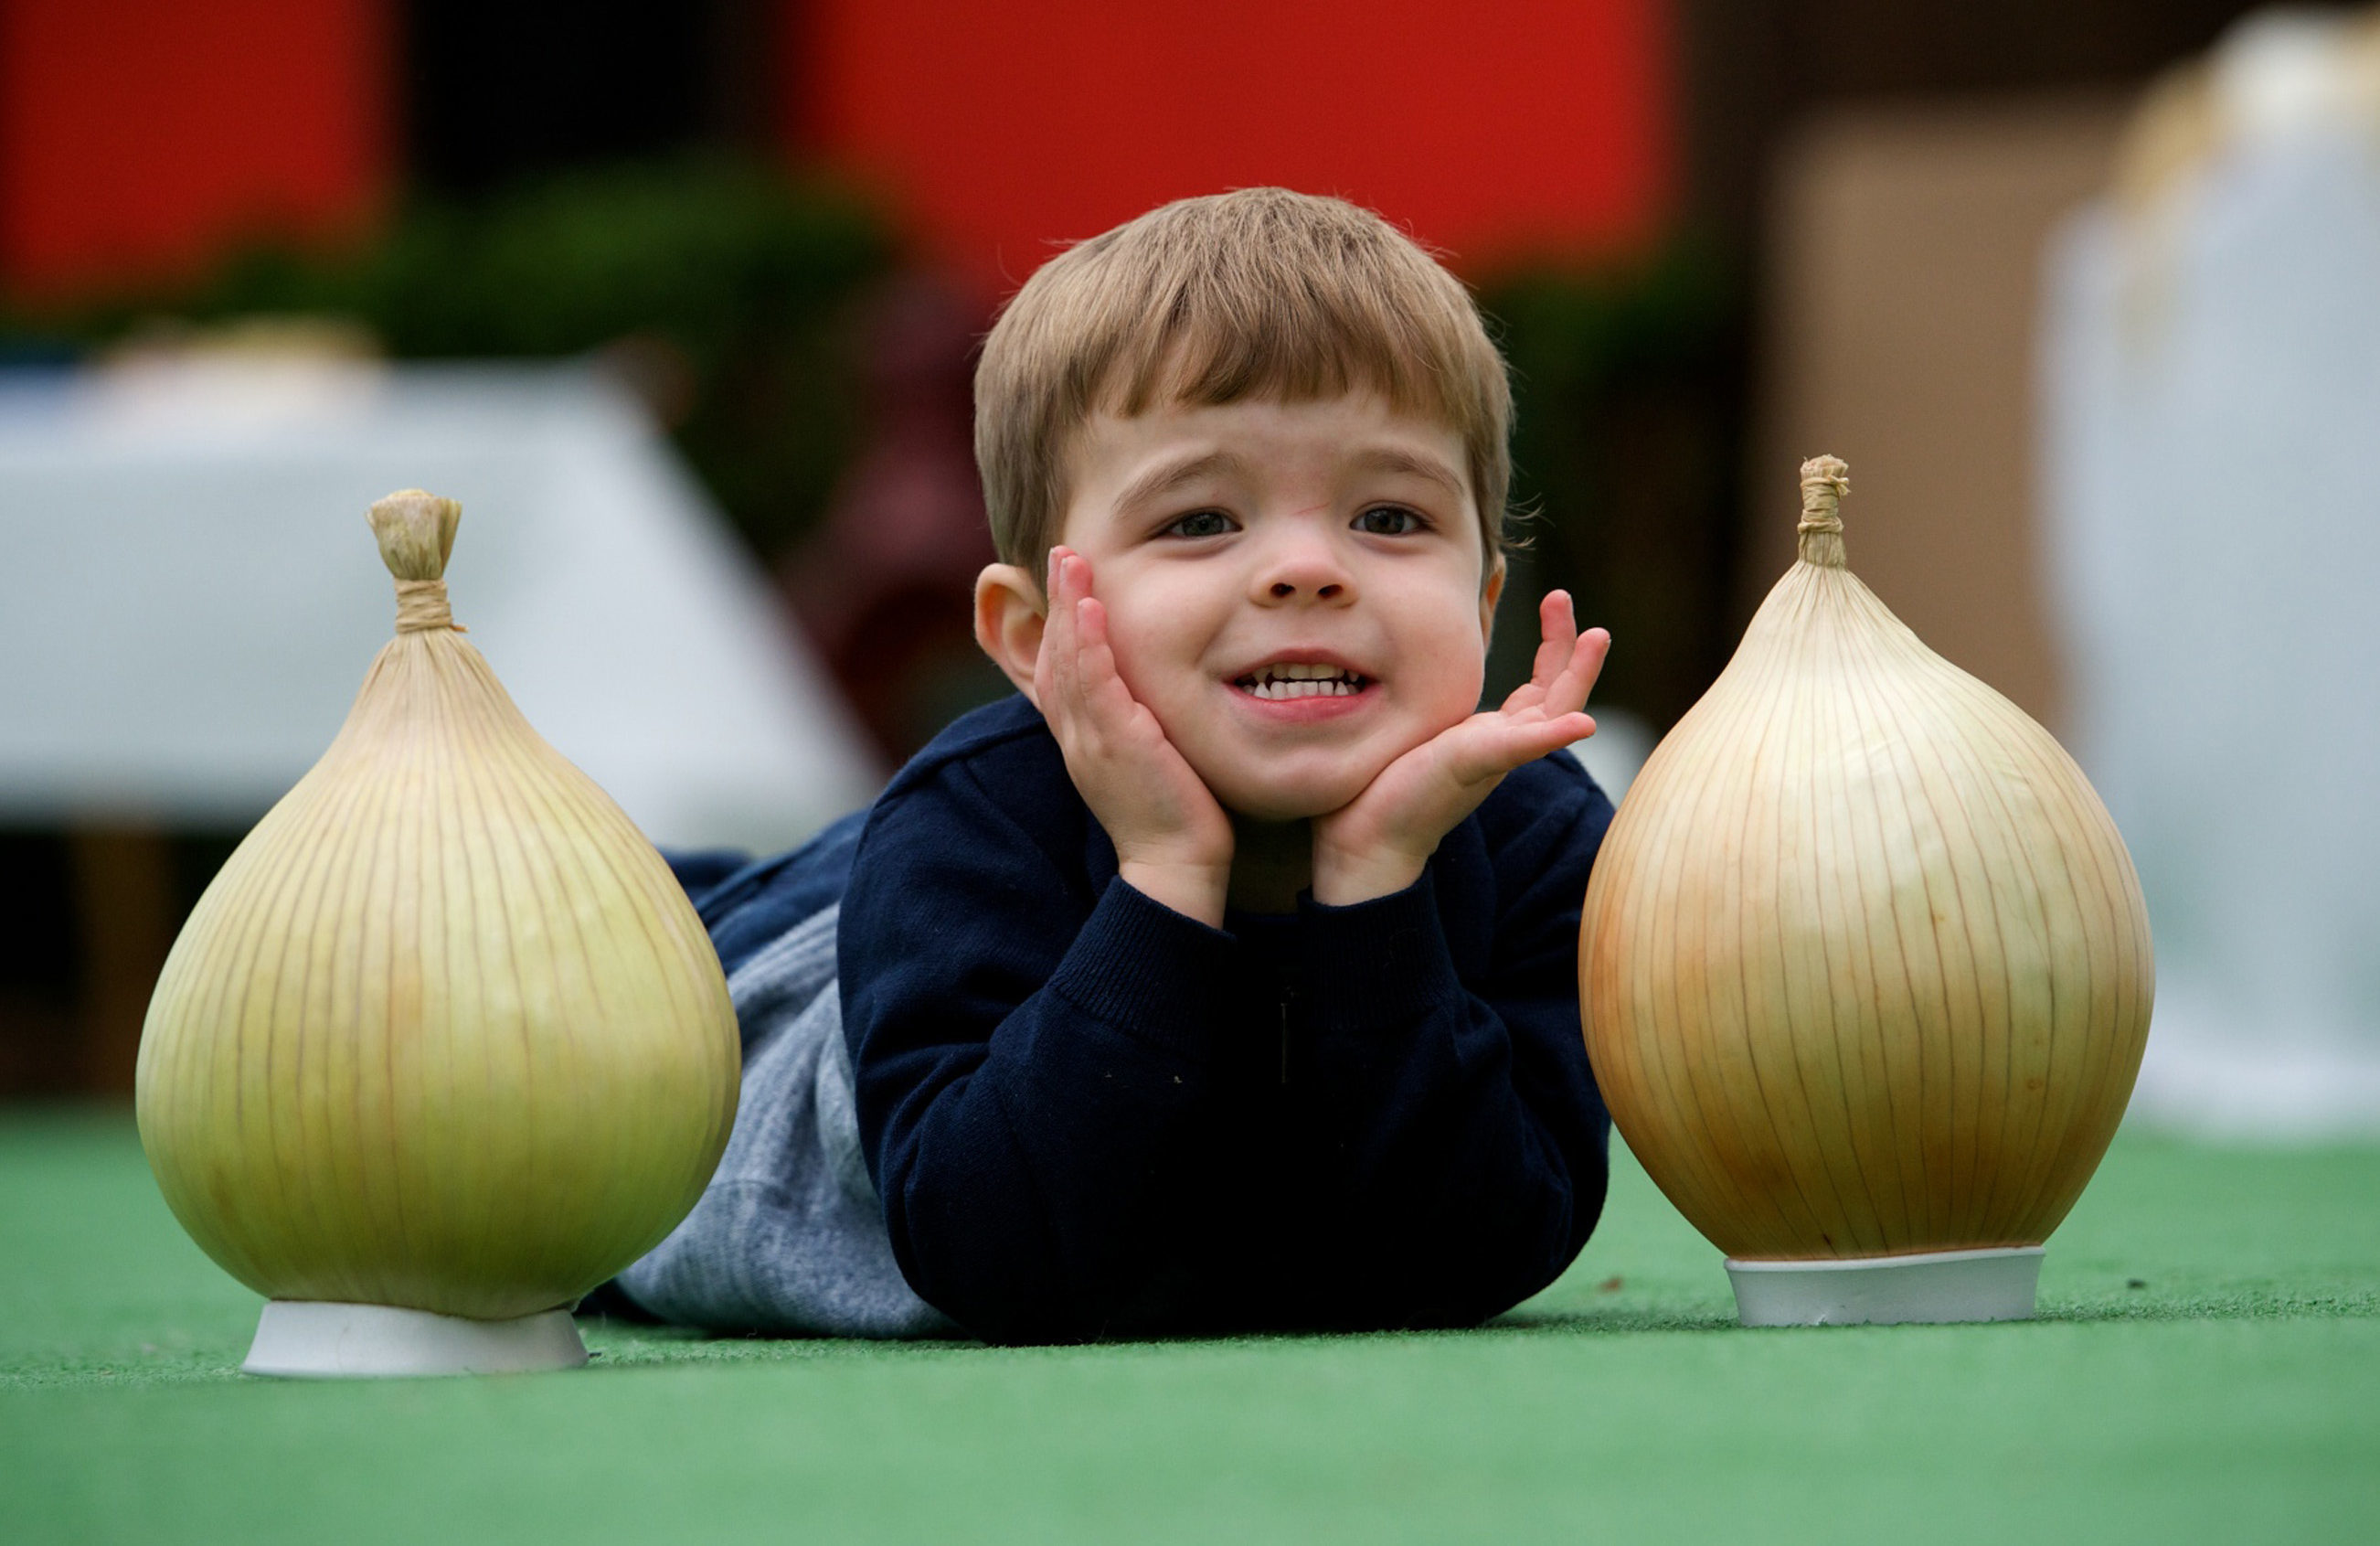 Youngster Ethan Hainey, from Inchinnan, in Renfrewshire knows his onions